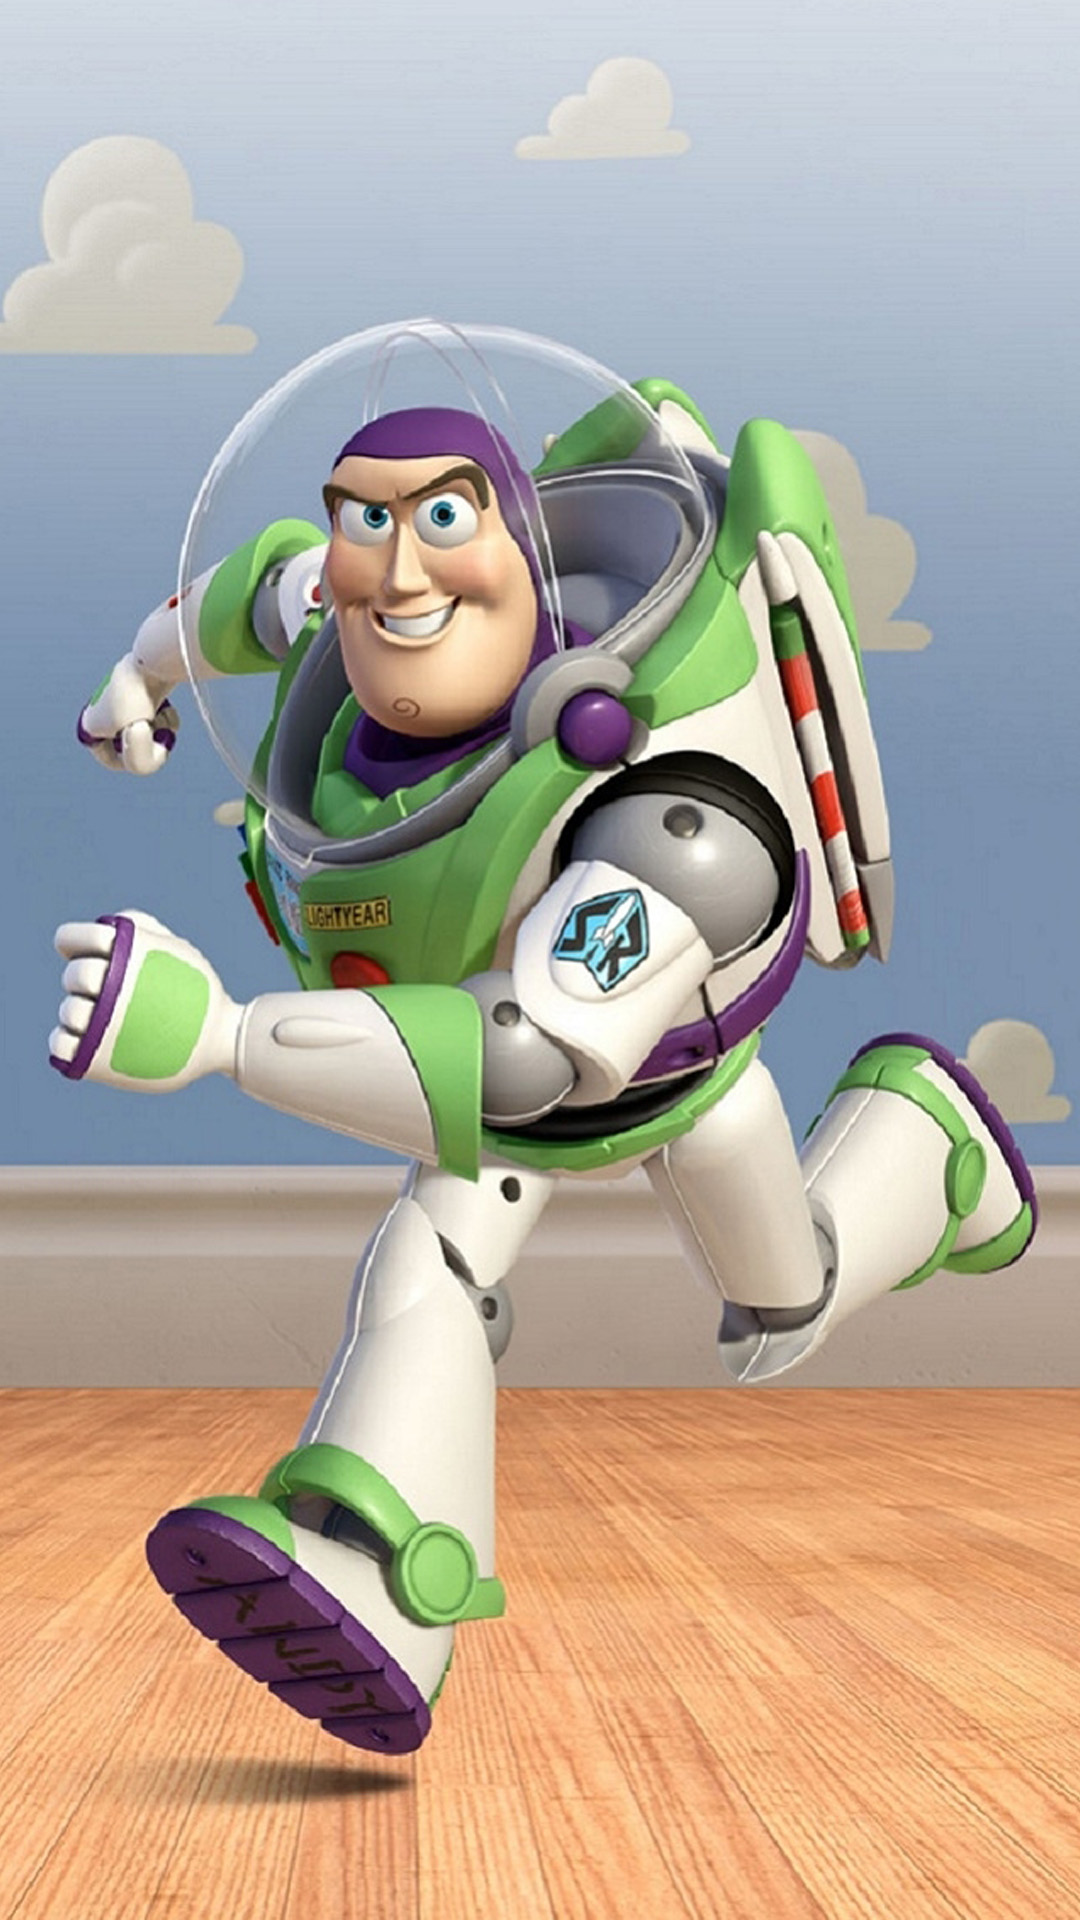 Toy Story Buzz Lightyear Android wallpaper